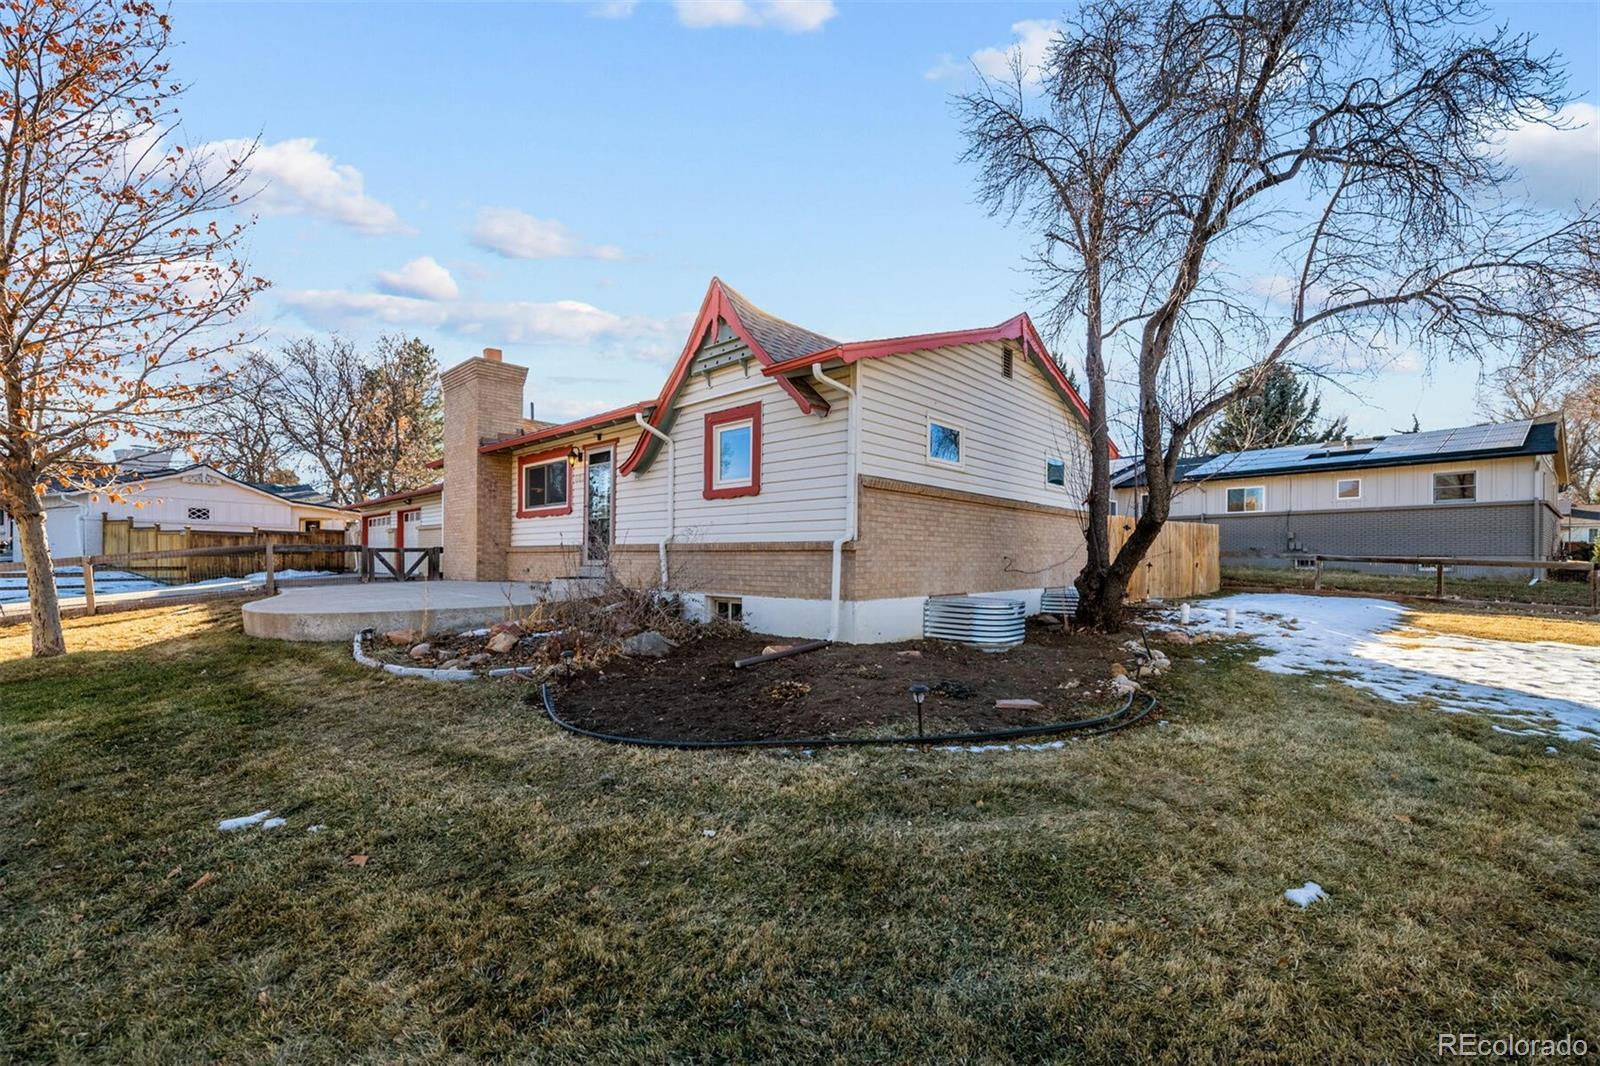 685 Ammons Way, Lakewood, CO 80214 - #: 3333531